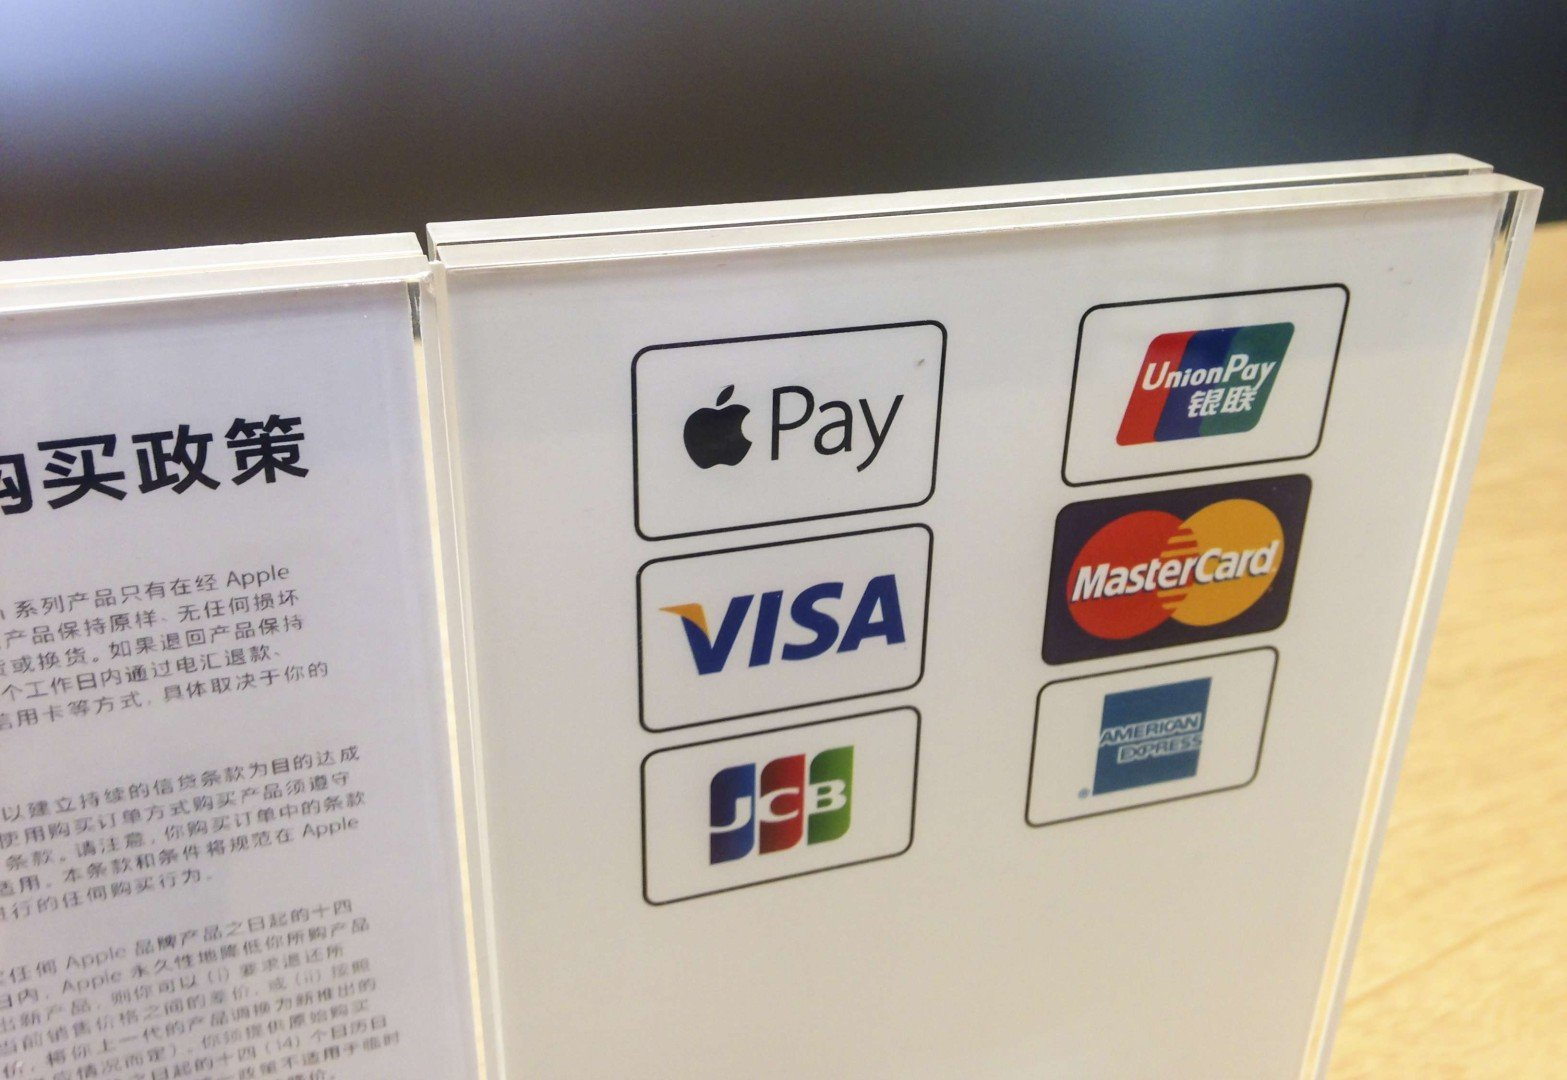 Hong Kong's HKT expands mobile payment service as part of